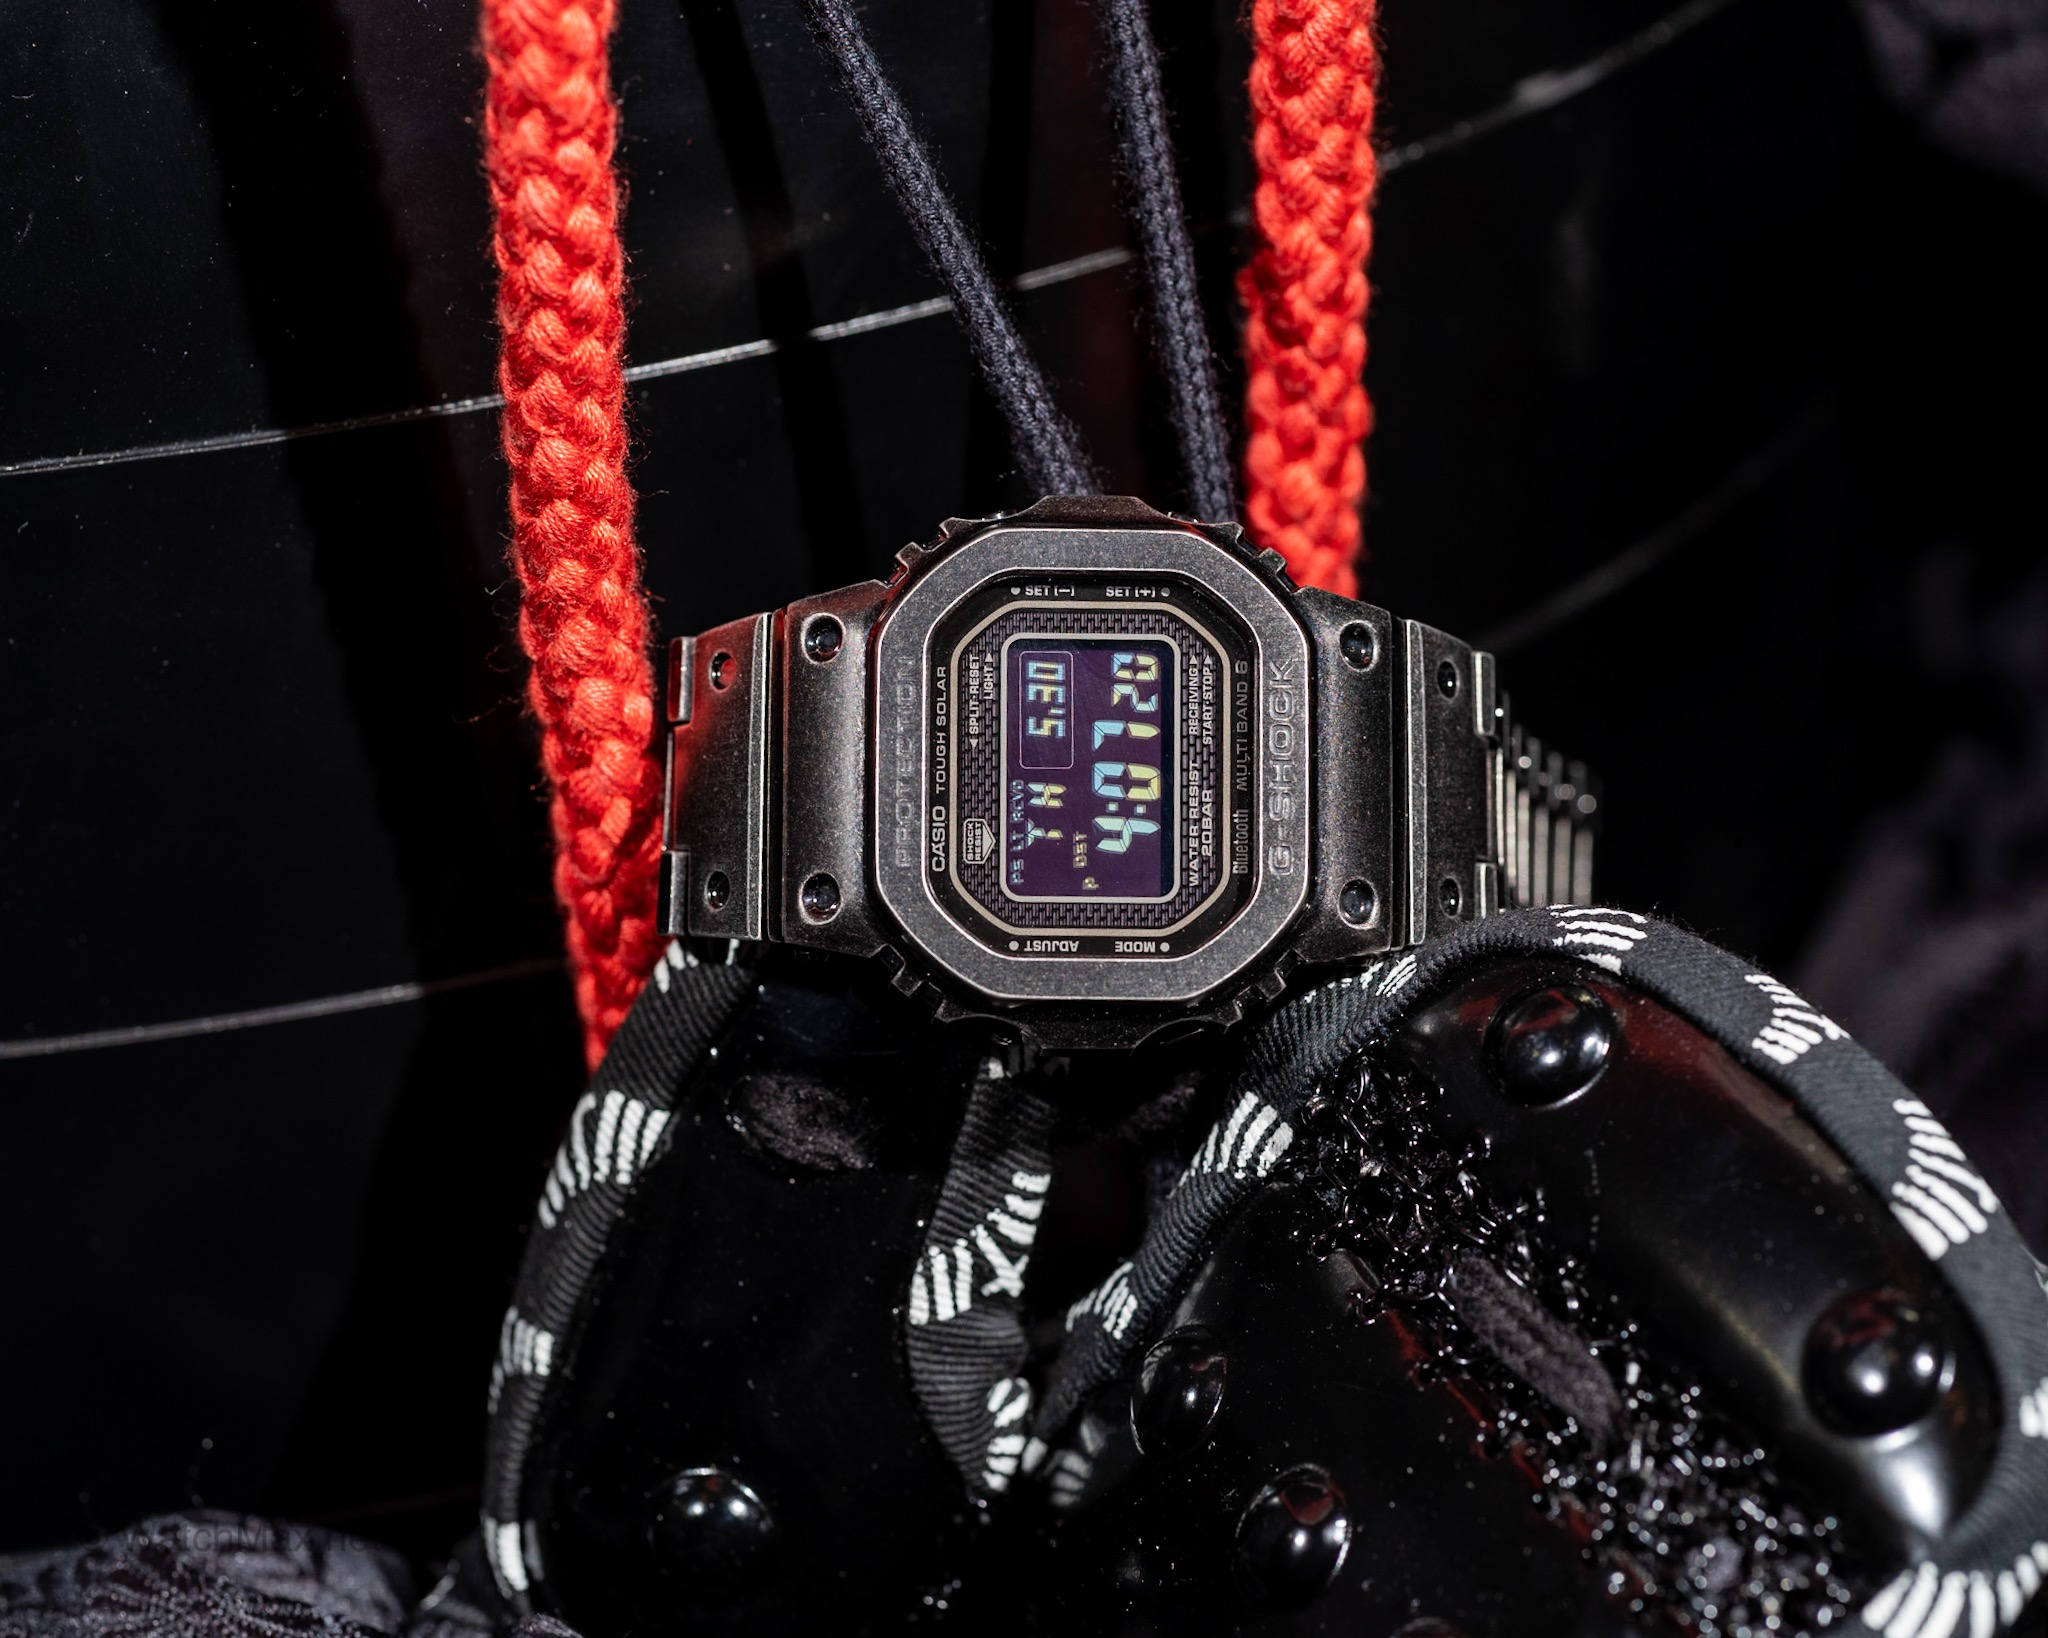 Casio G-Shock 2019 novelties first look - I take a brief look at some of Casio's 2019 novelties in the G-Shock collection, especially the limited edition models. Are the worth the hefty price point? Read more